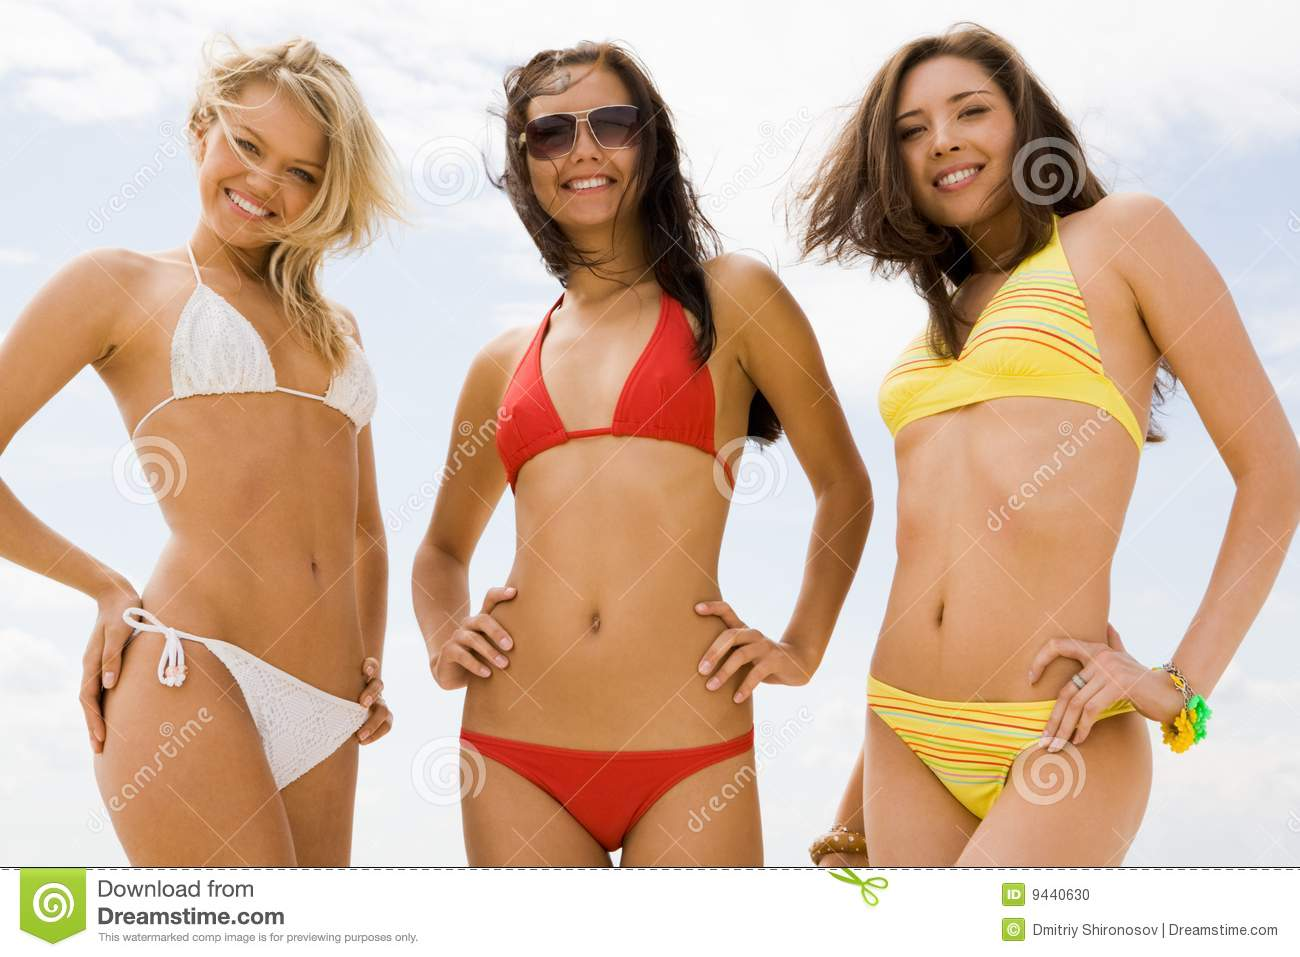 Only Three women in bikini swimwear